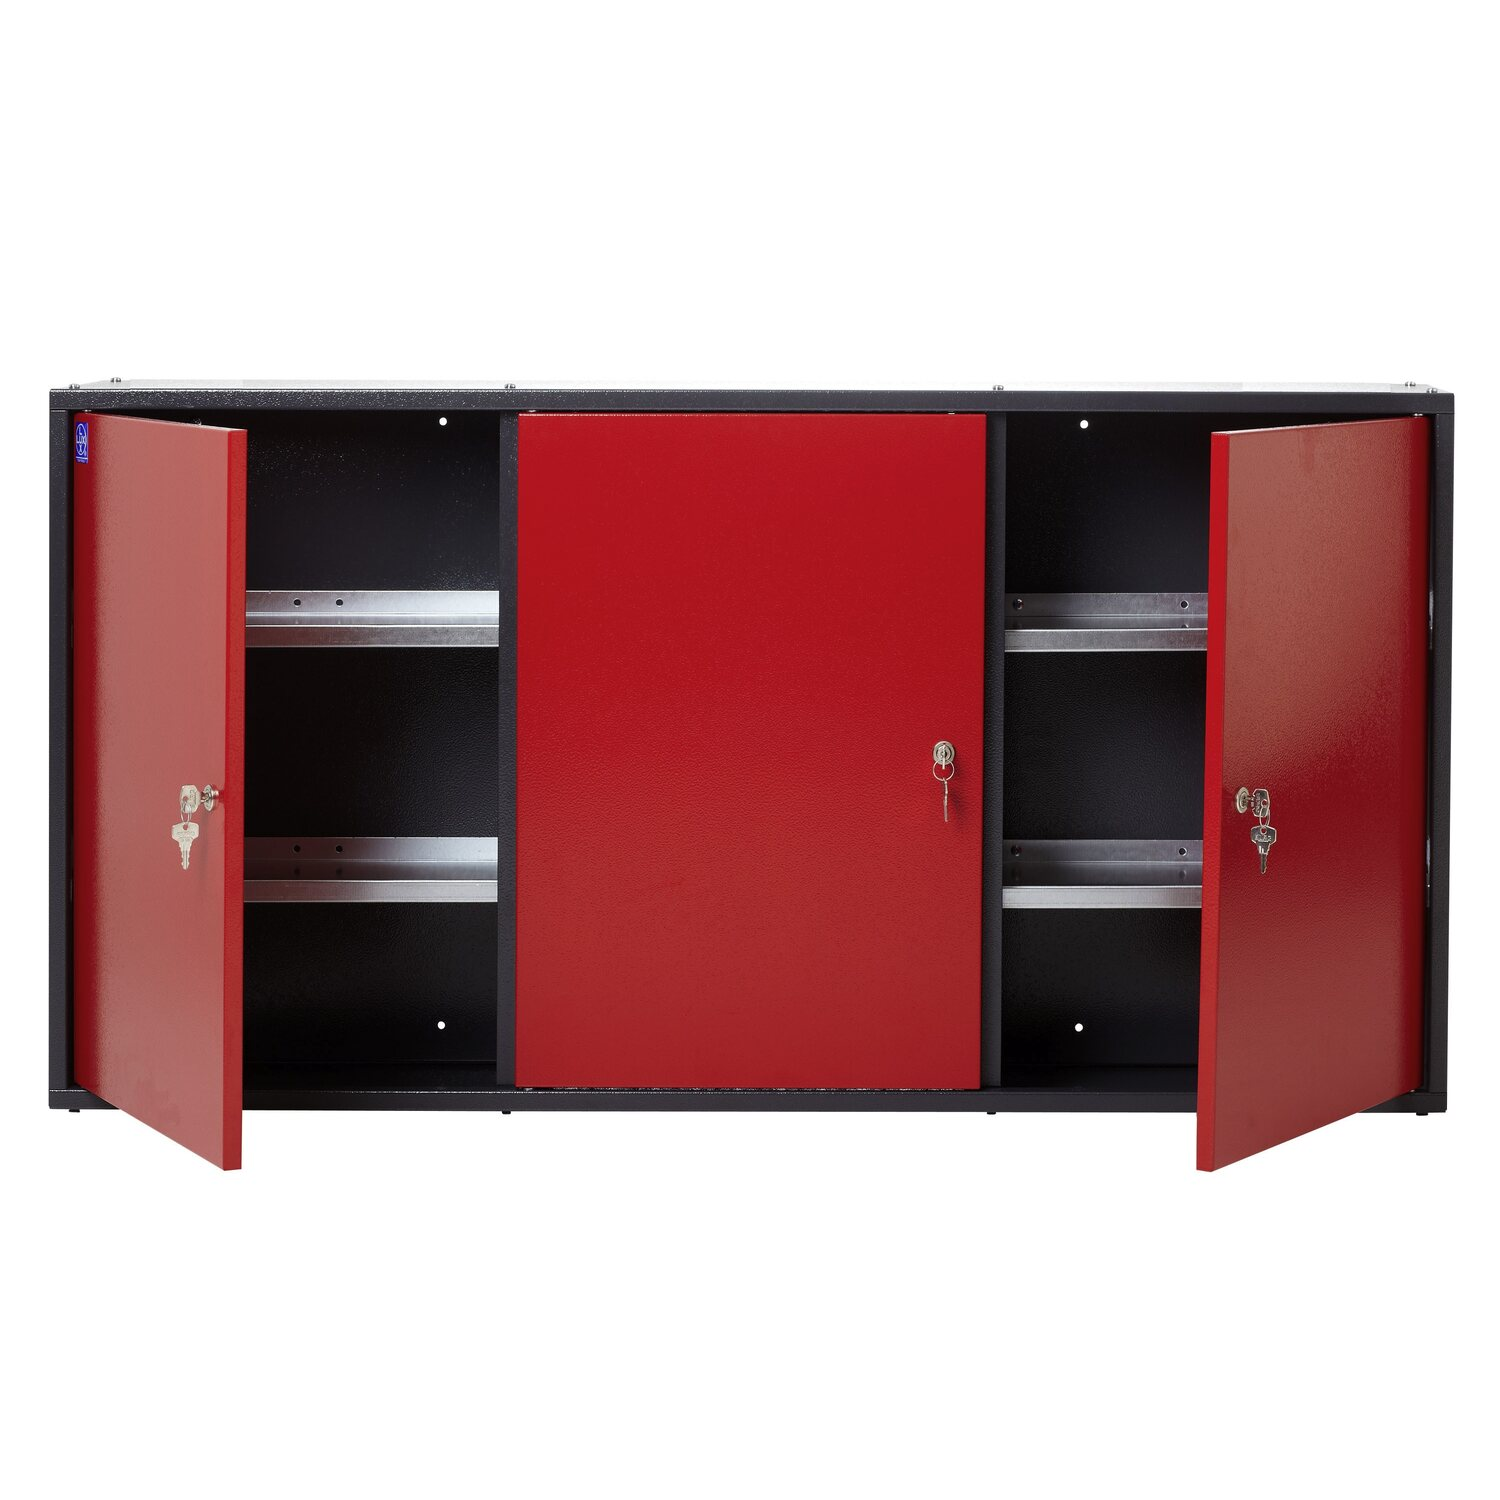 lux h ngeschrank 3 t rig 1200 mm breit kaufen bei obi. Black Bedroom Furniture Sets. Home Design Ideas